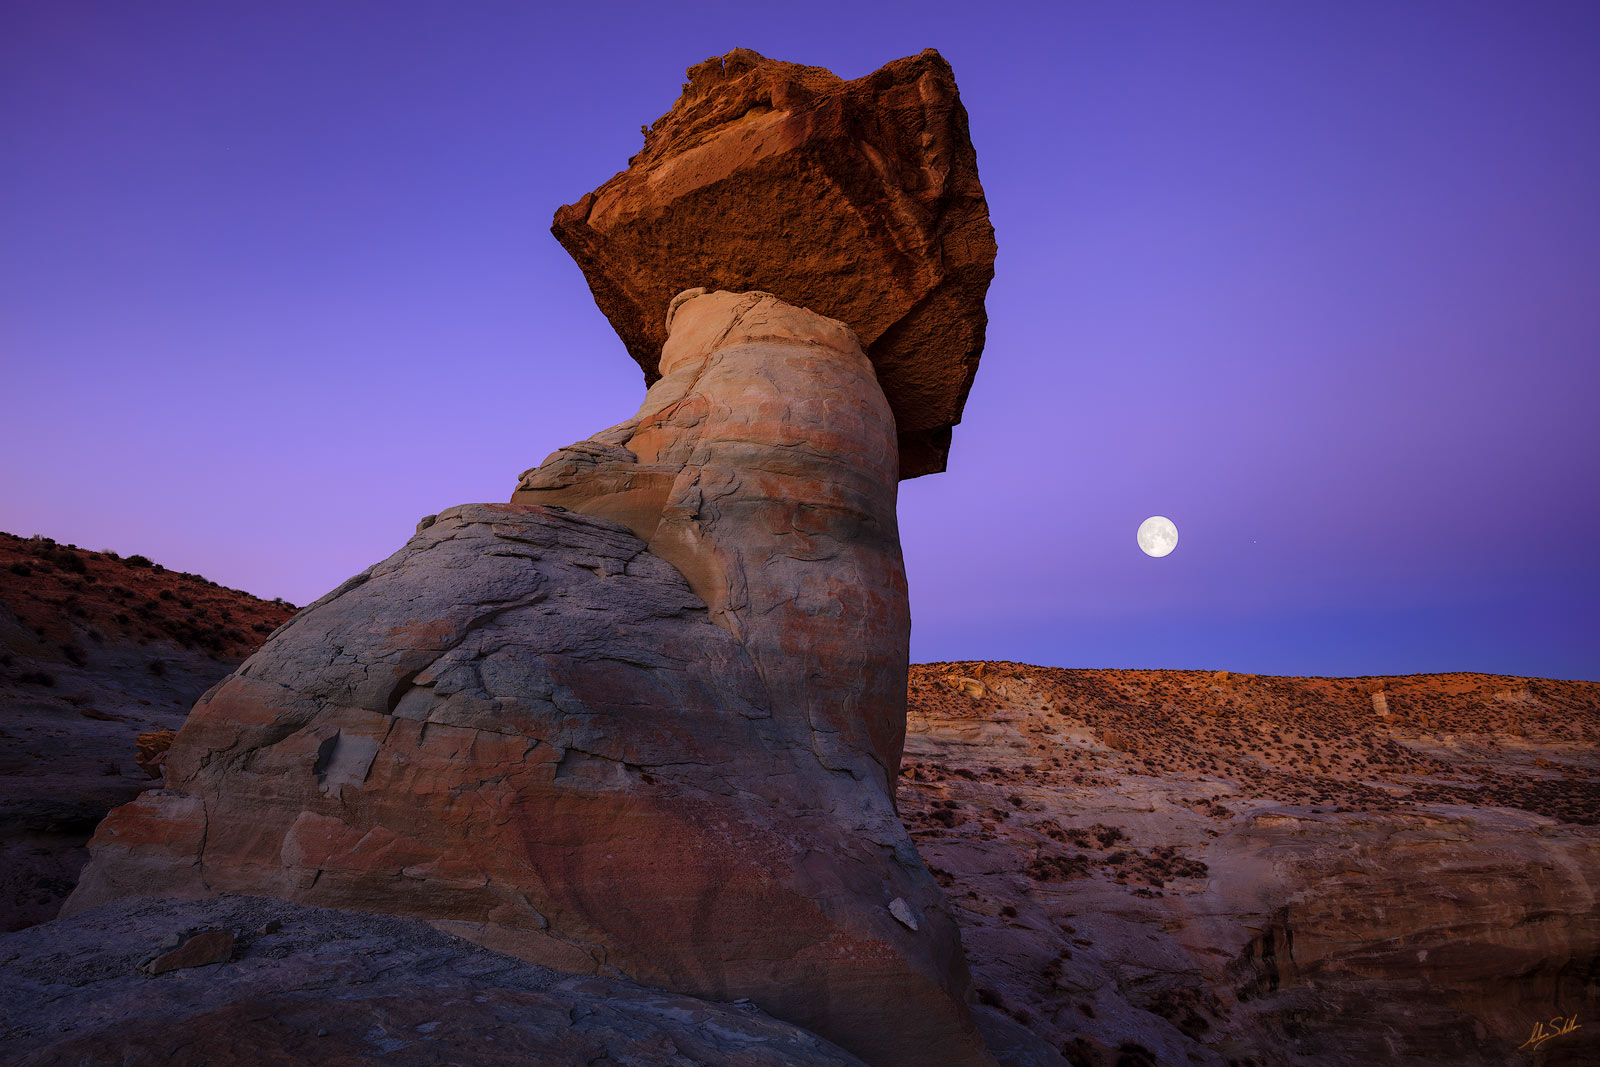 AZ, Arizona, Desert, Full Moon, Hoodoo, Geology, Lunar, Moon, Stud Horse Point, Stud Horse Point Hoodoos, Toadstool, photo